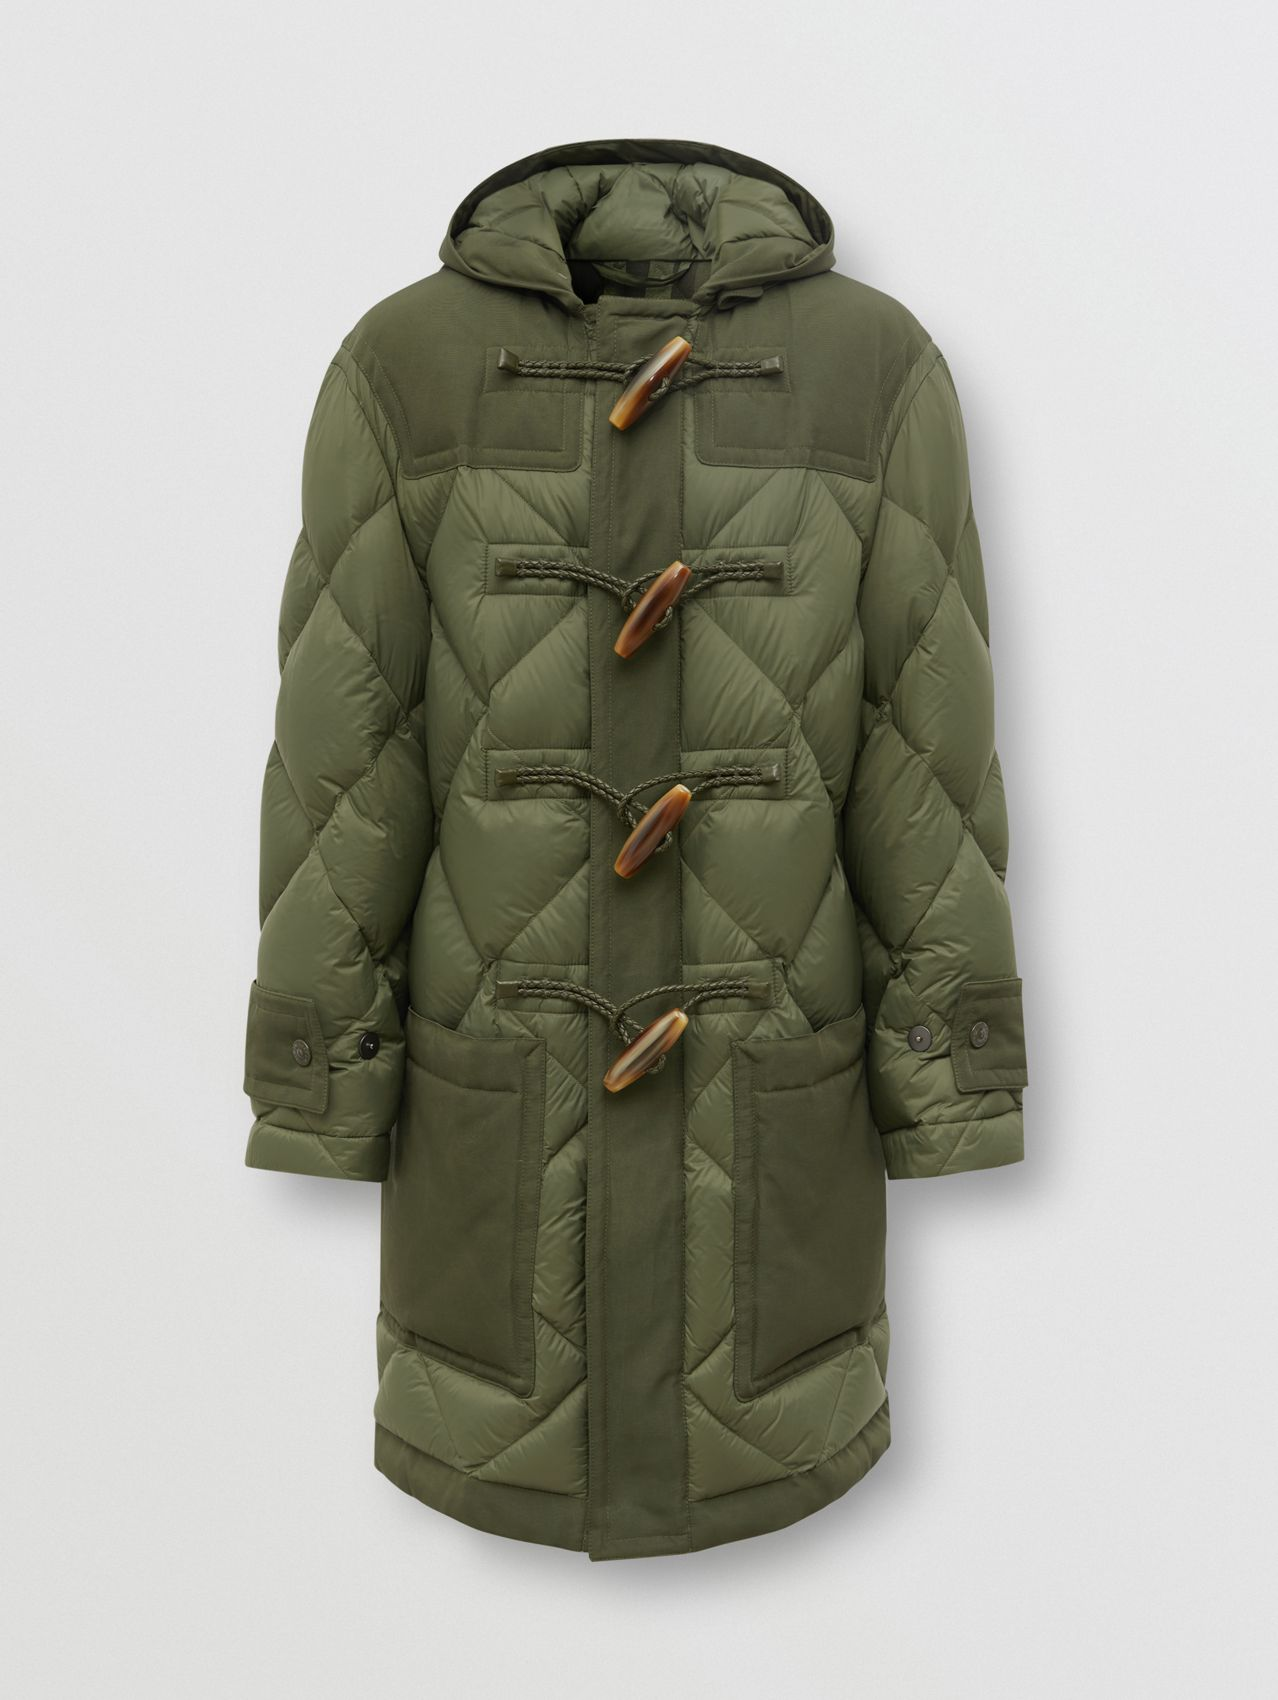 Diamond Quilted Recycled Nylon Duffle Coat in Olive